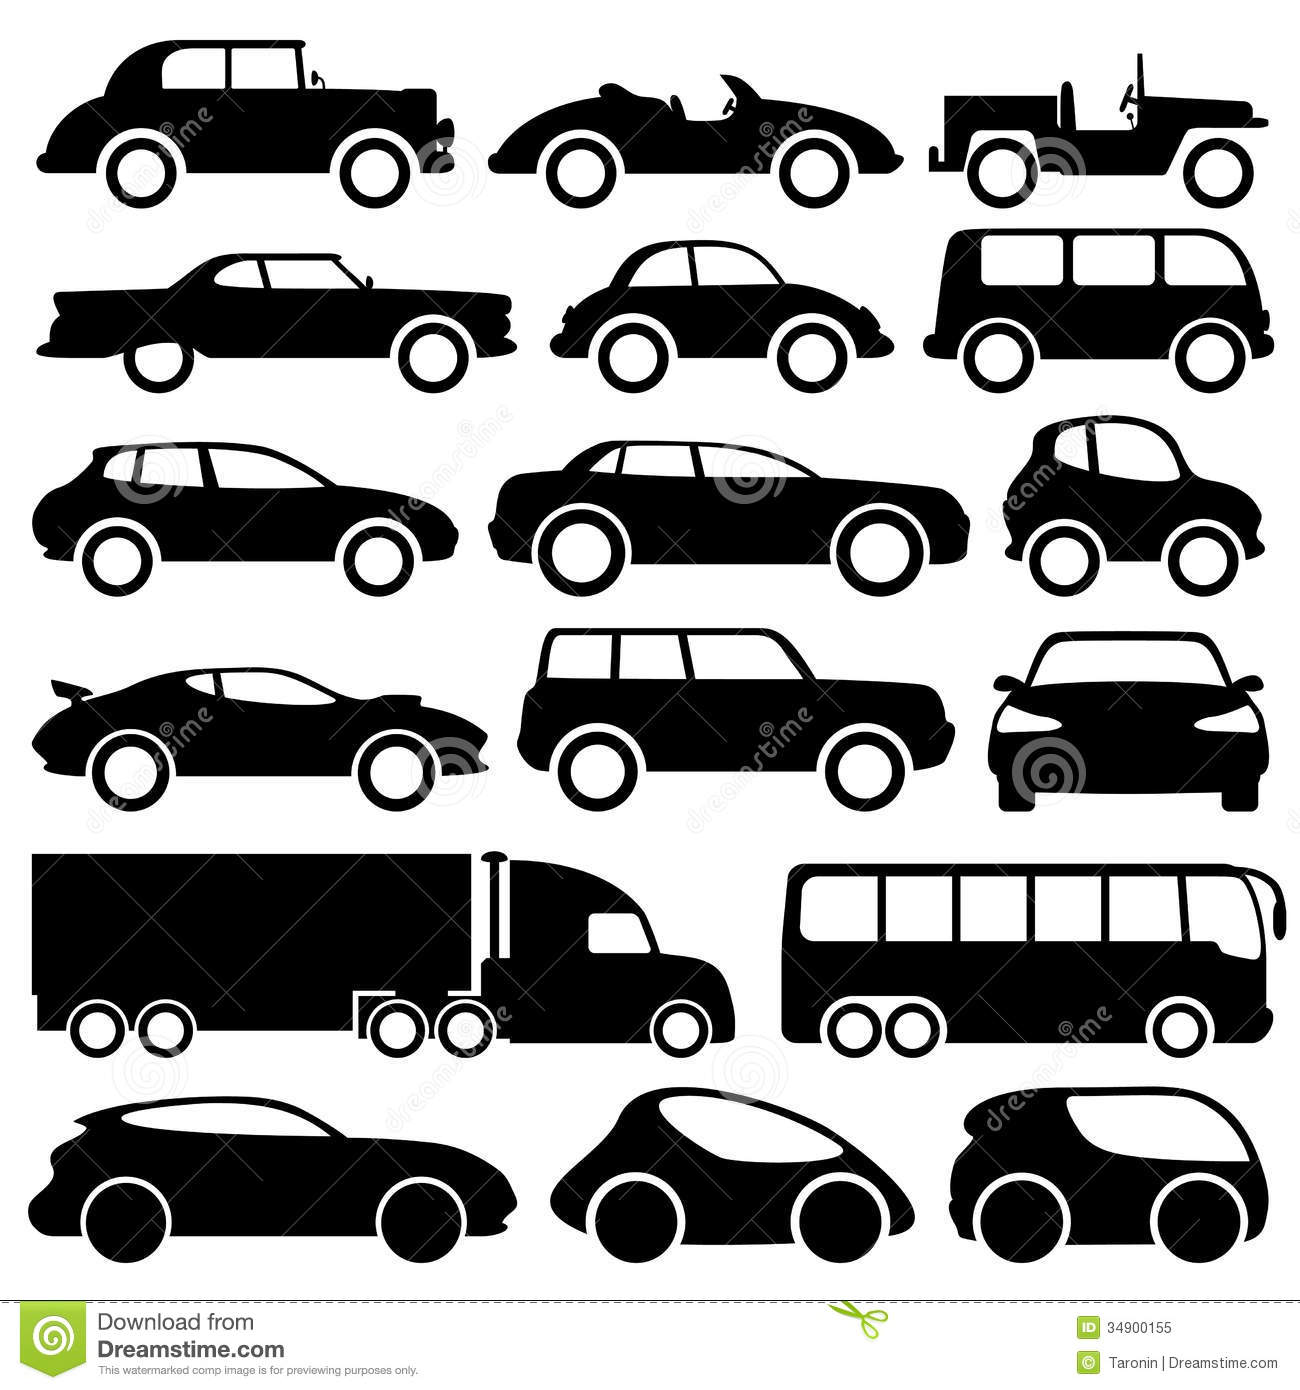 12 Black And White Truck Icon Images